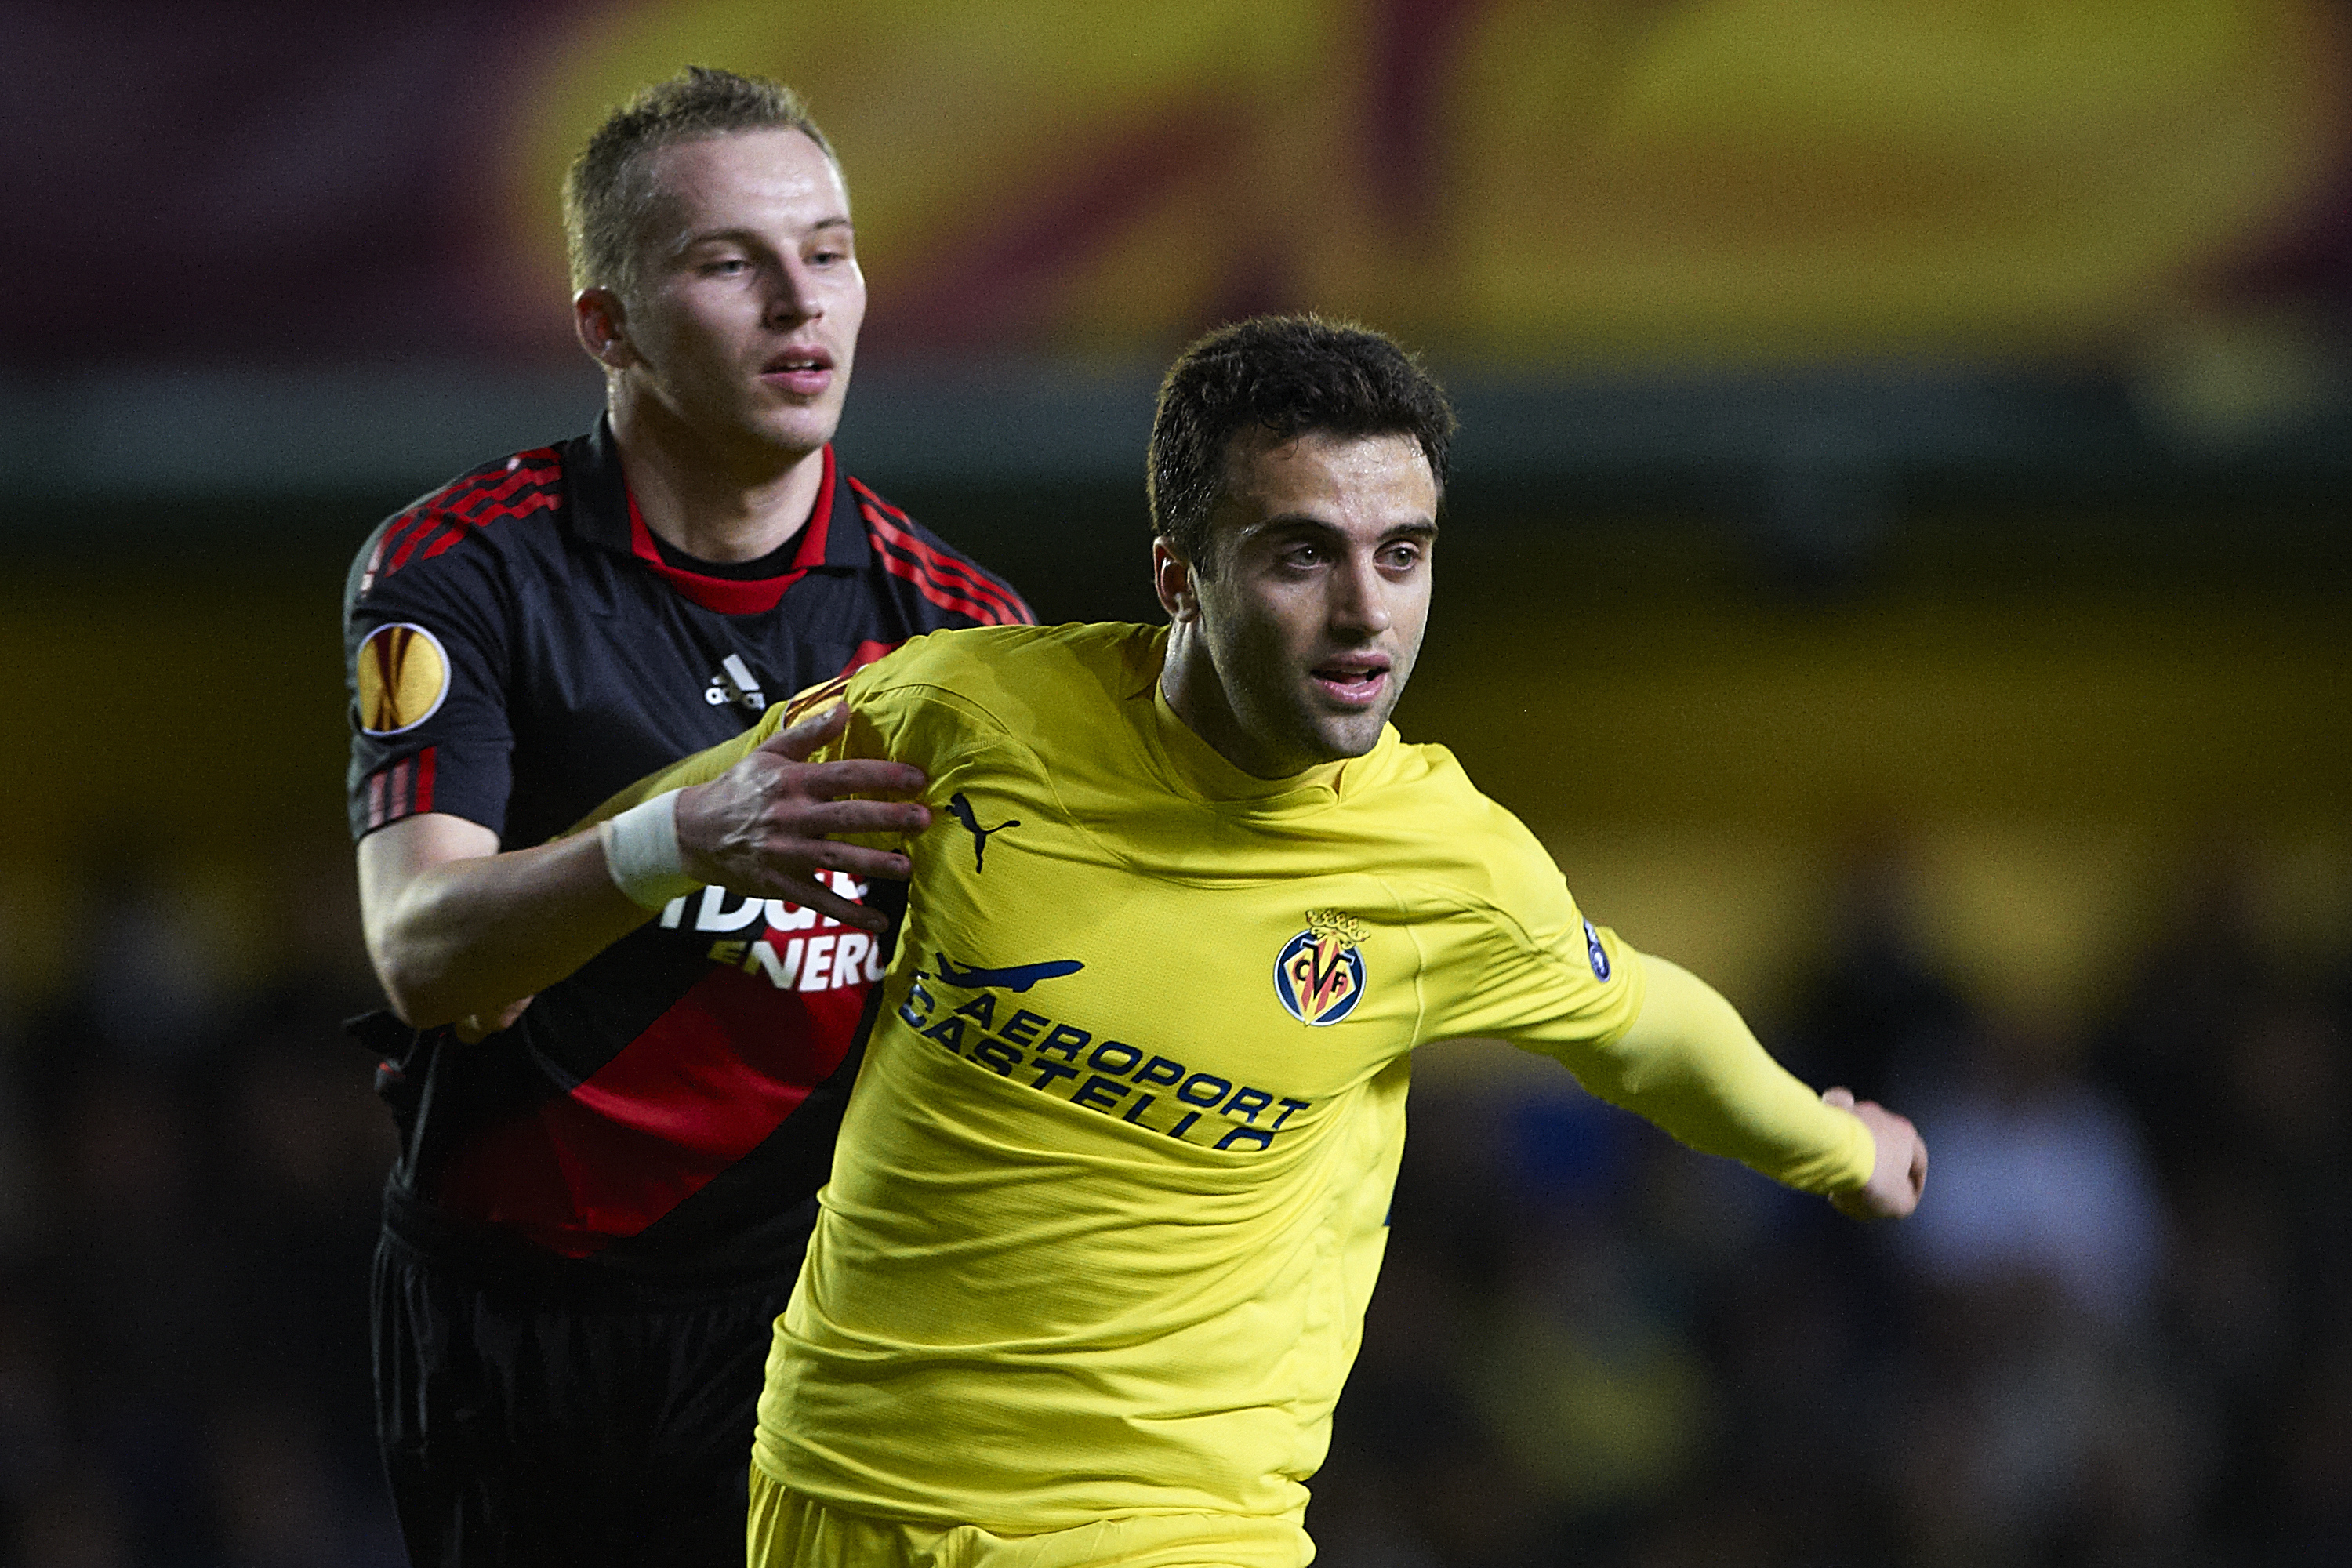 VILLAREAL, SPAIN - MARCH 17:  Giuseppe Rossi (R) of Villarreal competes for the position with Michal Kadlec of Bayer Leverkusen during the UEFA Europa League round of 16 second leg match between Villarreal and Bayer Leverkusen at El Madrigal stadium on Ma